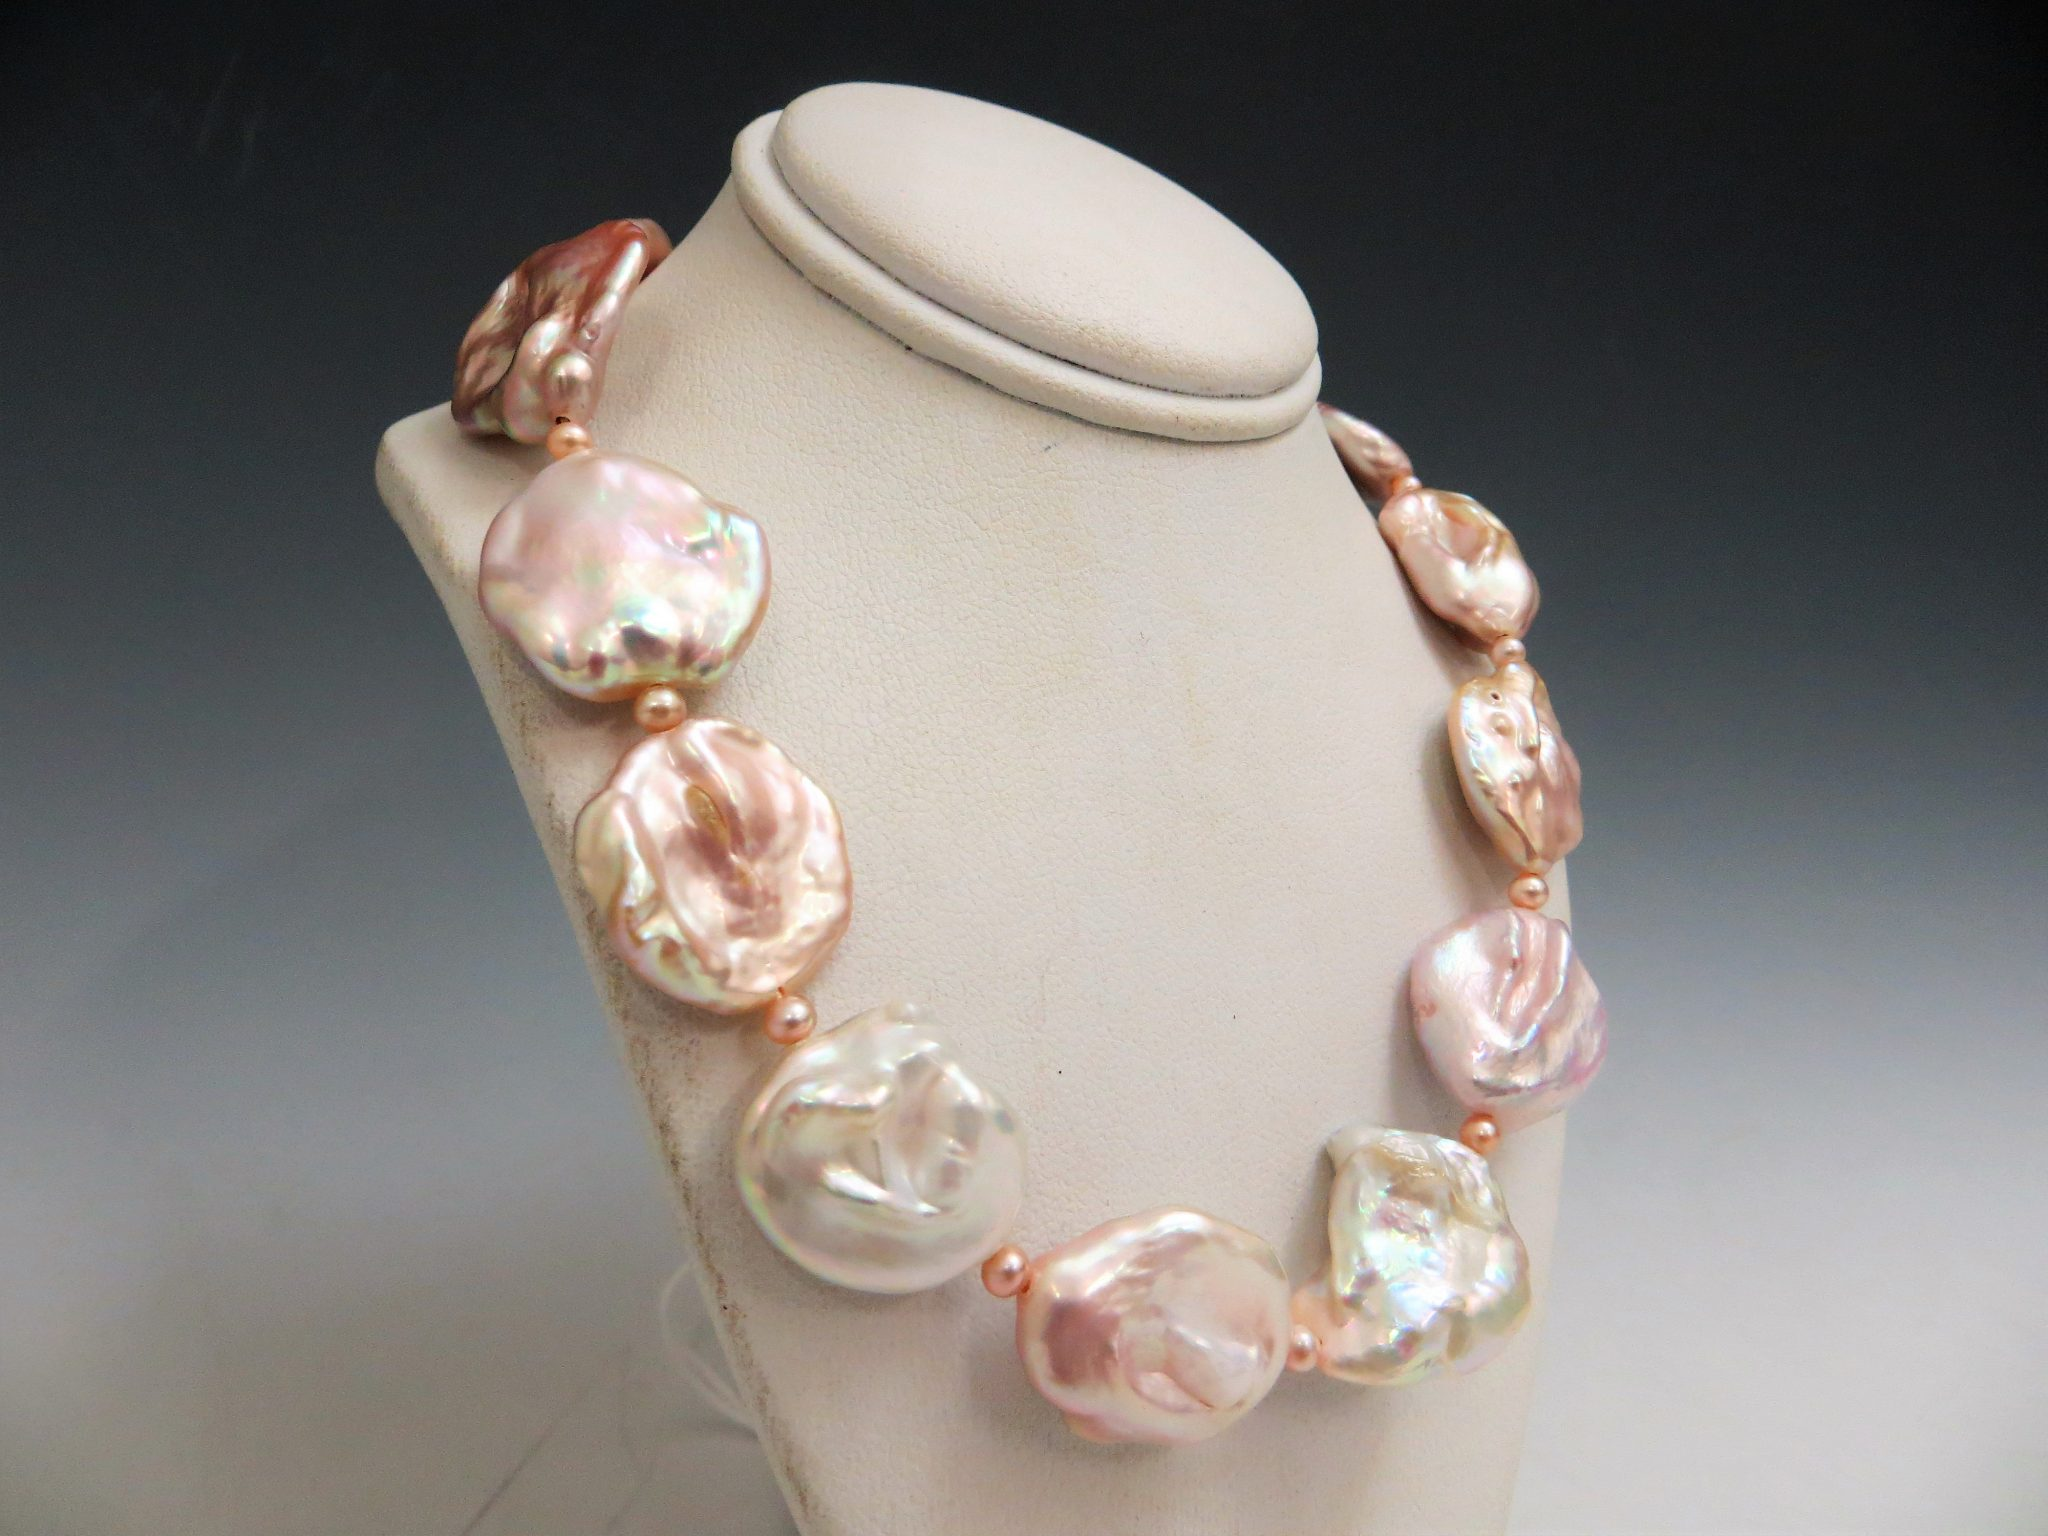 Hearts_Desire_Keshi_Pearl_Necklace-HEARTDE_AN1695.jpg